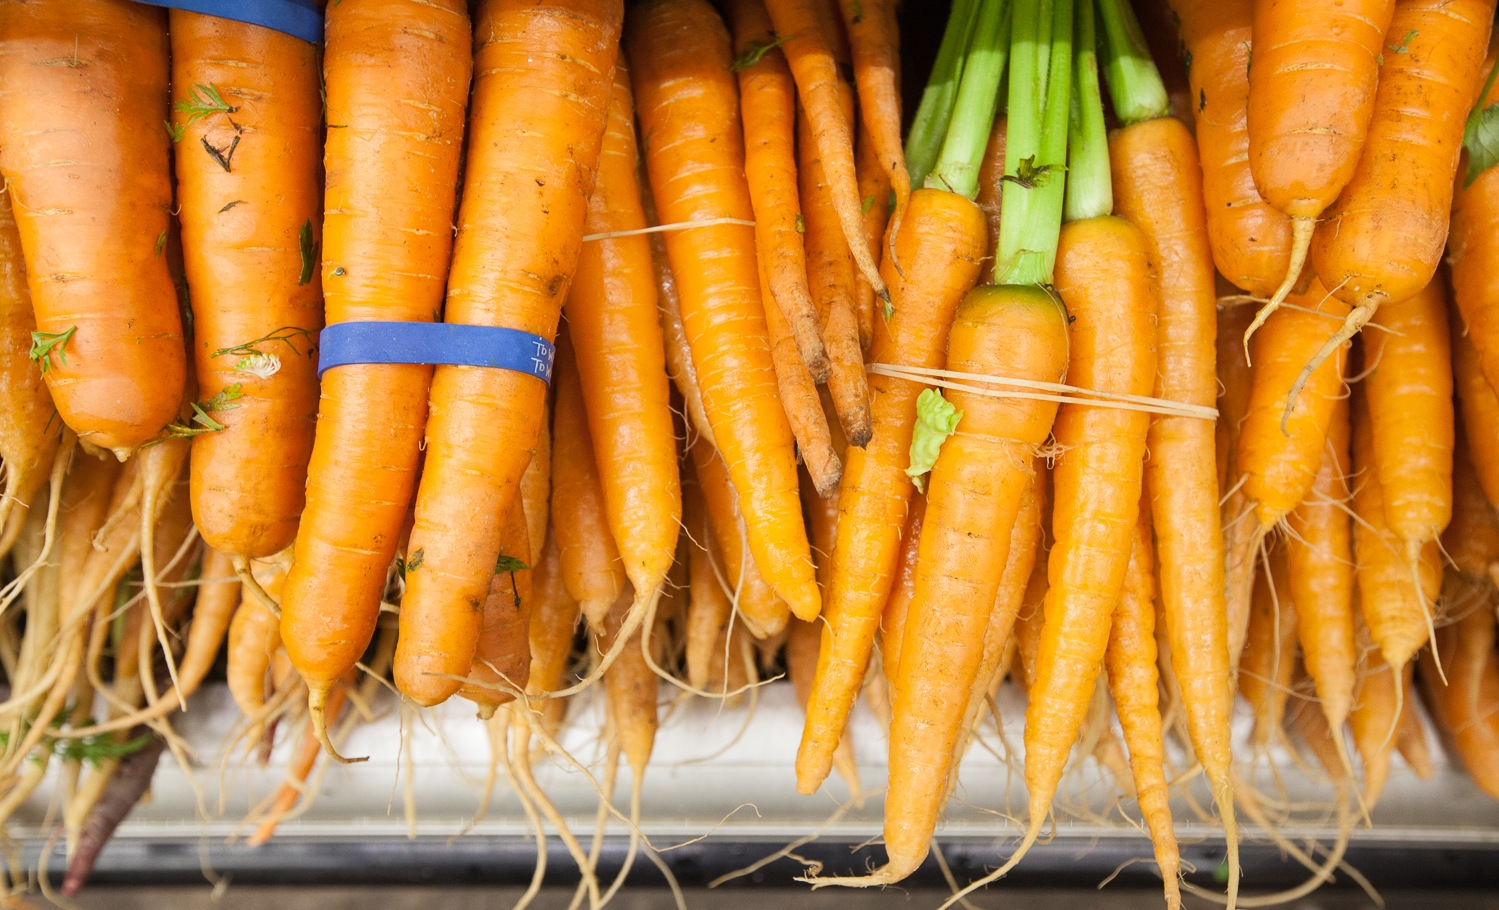 Organic Carrot Bunches Mana Foods Produce Department